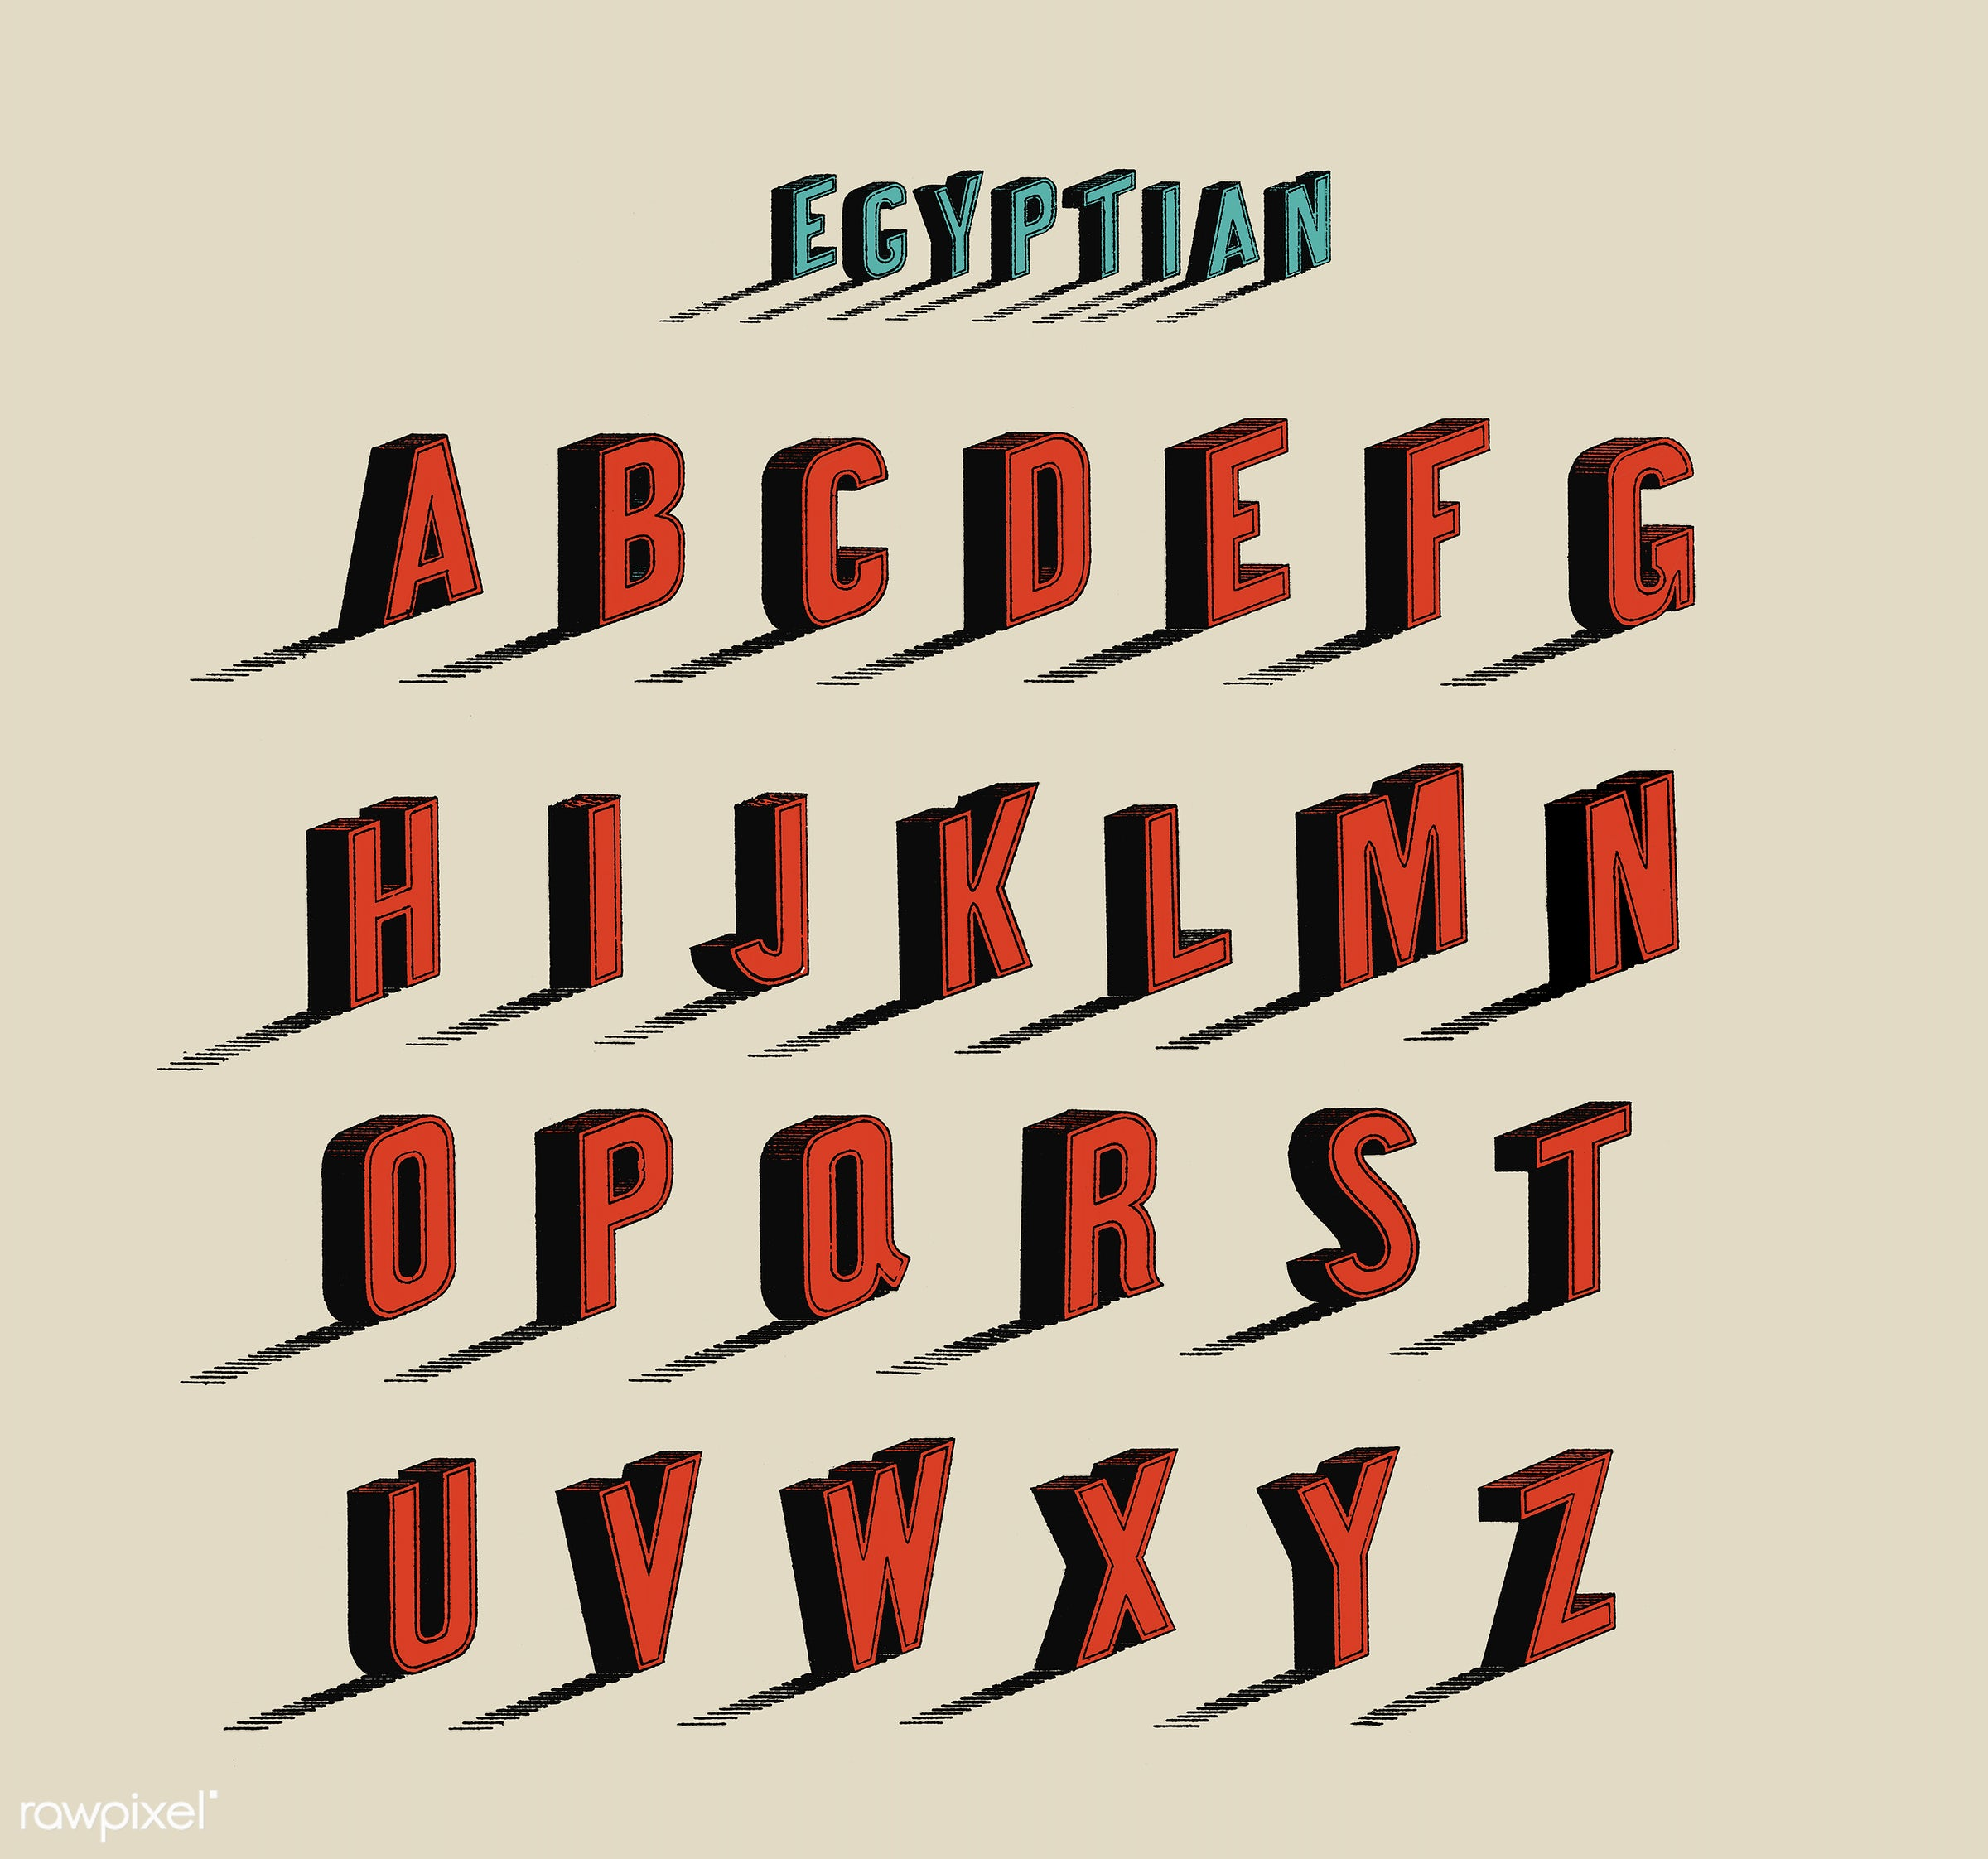 Egyptian Style Calligraphy Fonts From Draughtsmans Alphabets By Hermann Esser 1845 1908 Digitally Enhanced Our Own 5th Edition Of The Publication